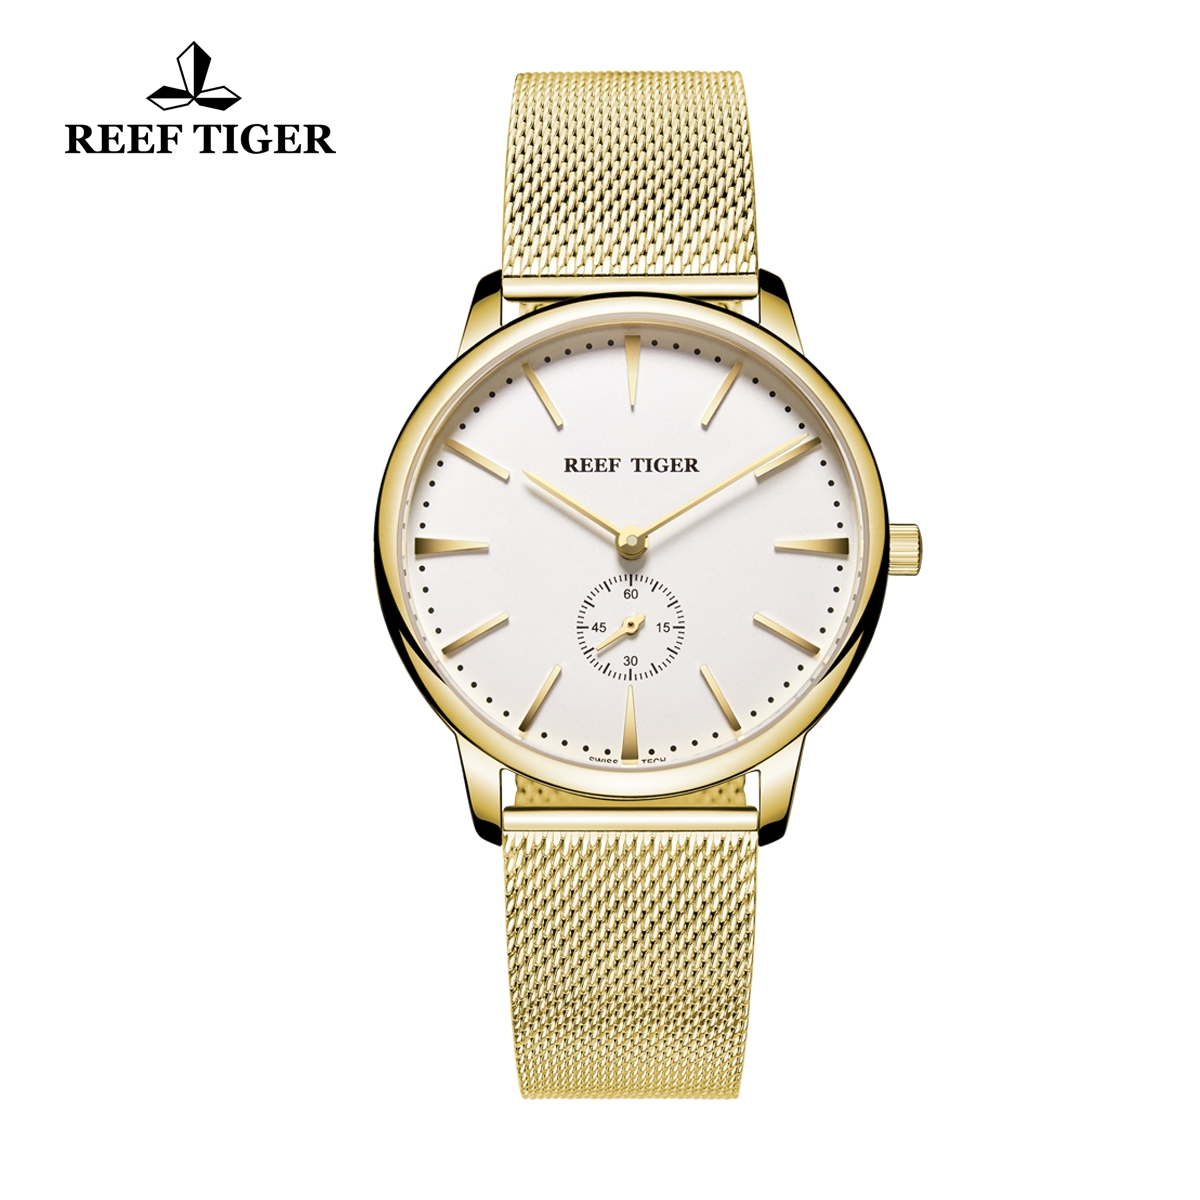 Reef Tiger Vintage Couple Watch White Dial Full Yellow Gold Mens Watches RGA820-MGWG